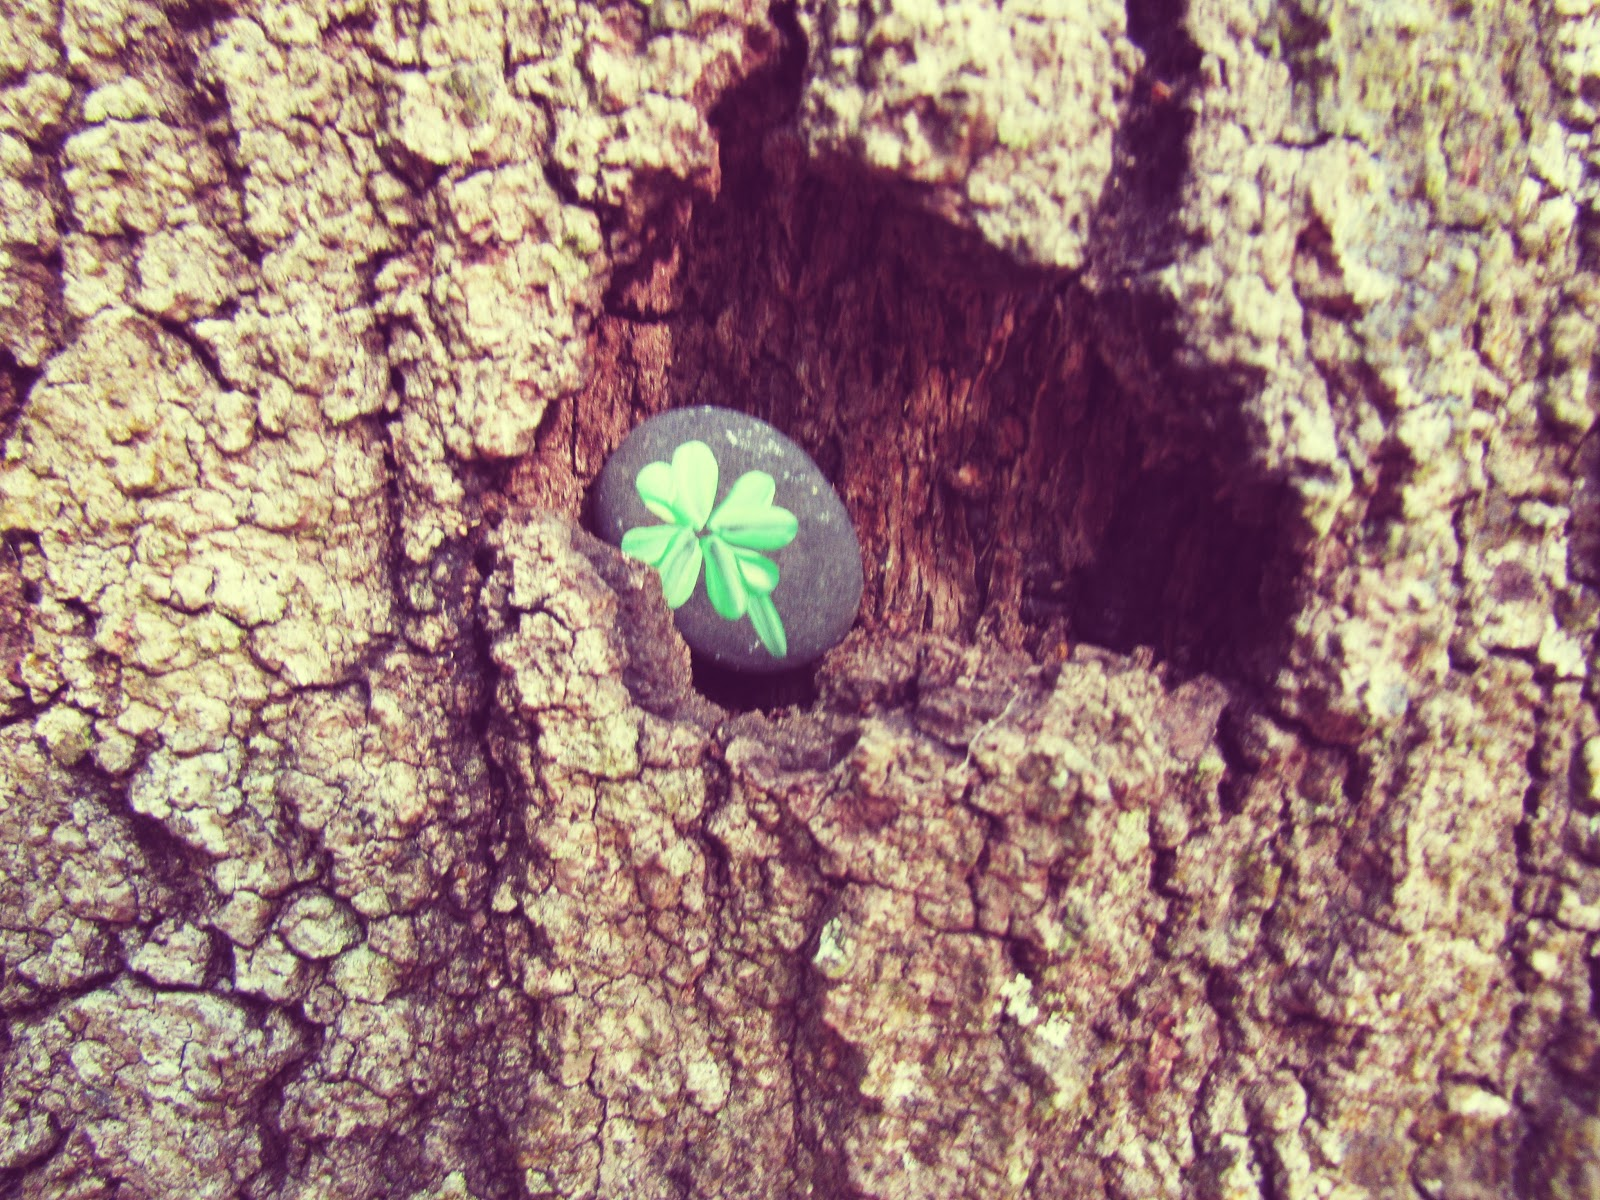 A good luck shamrock painted rock found in the bark of a tree in mother nature